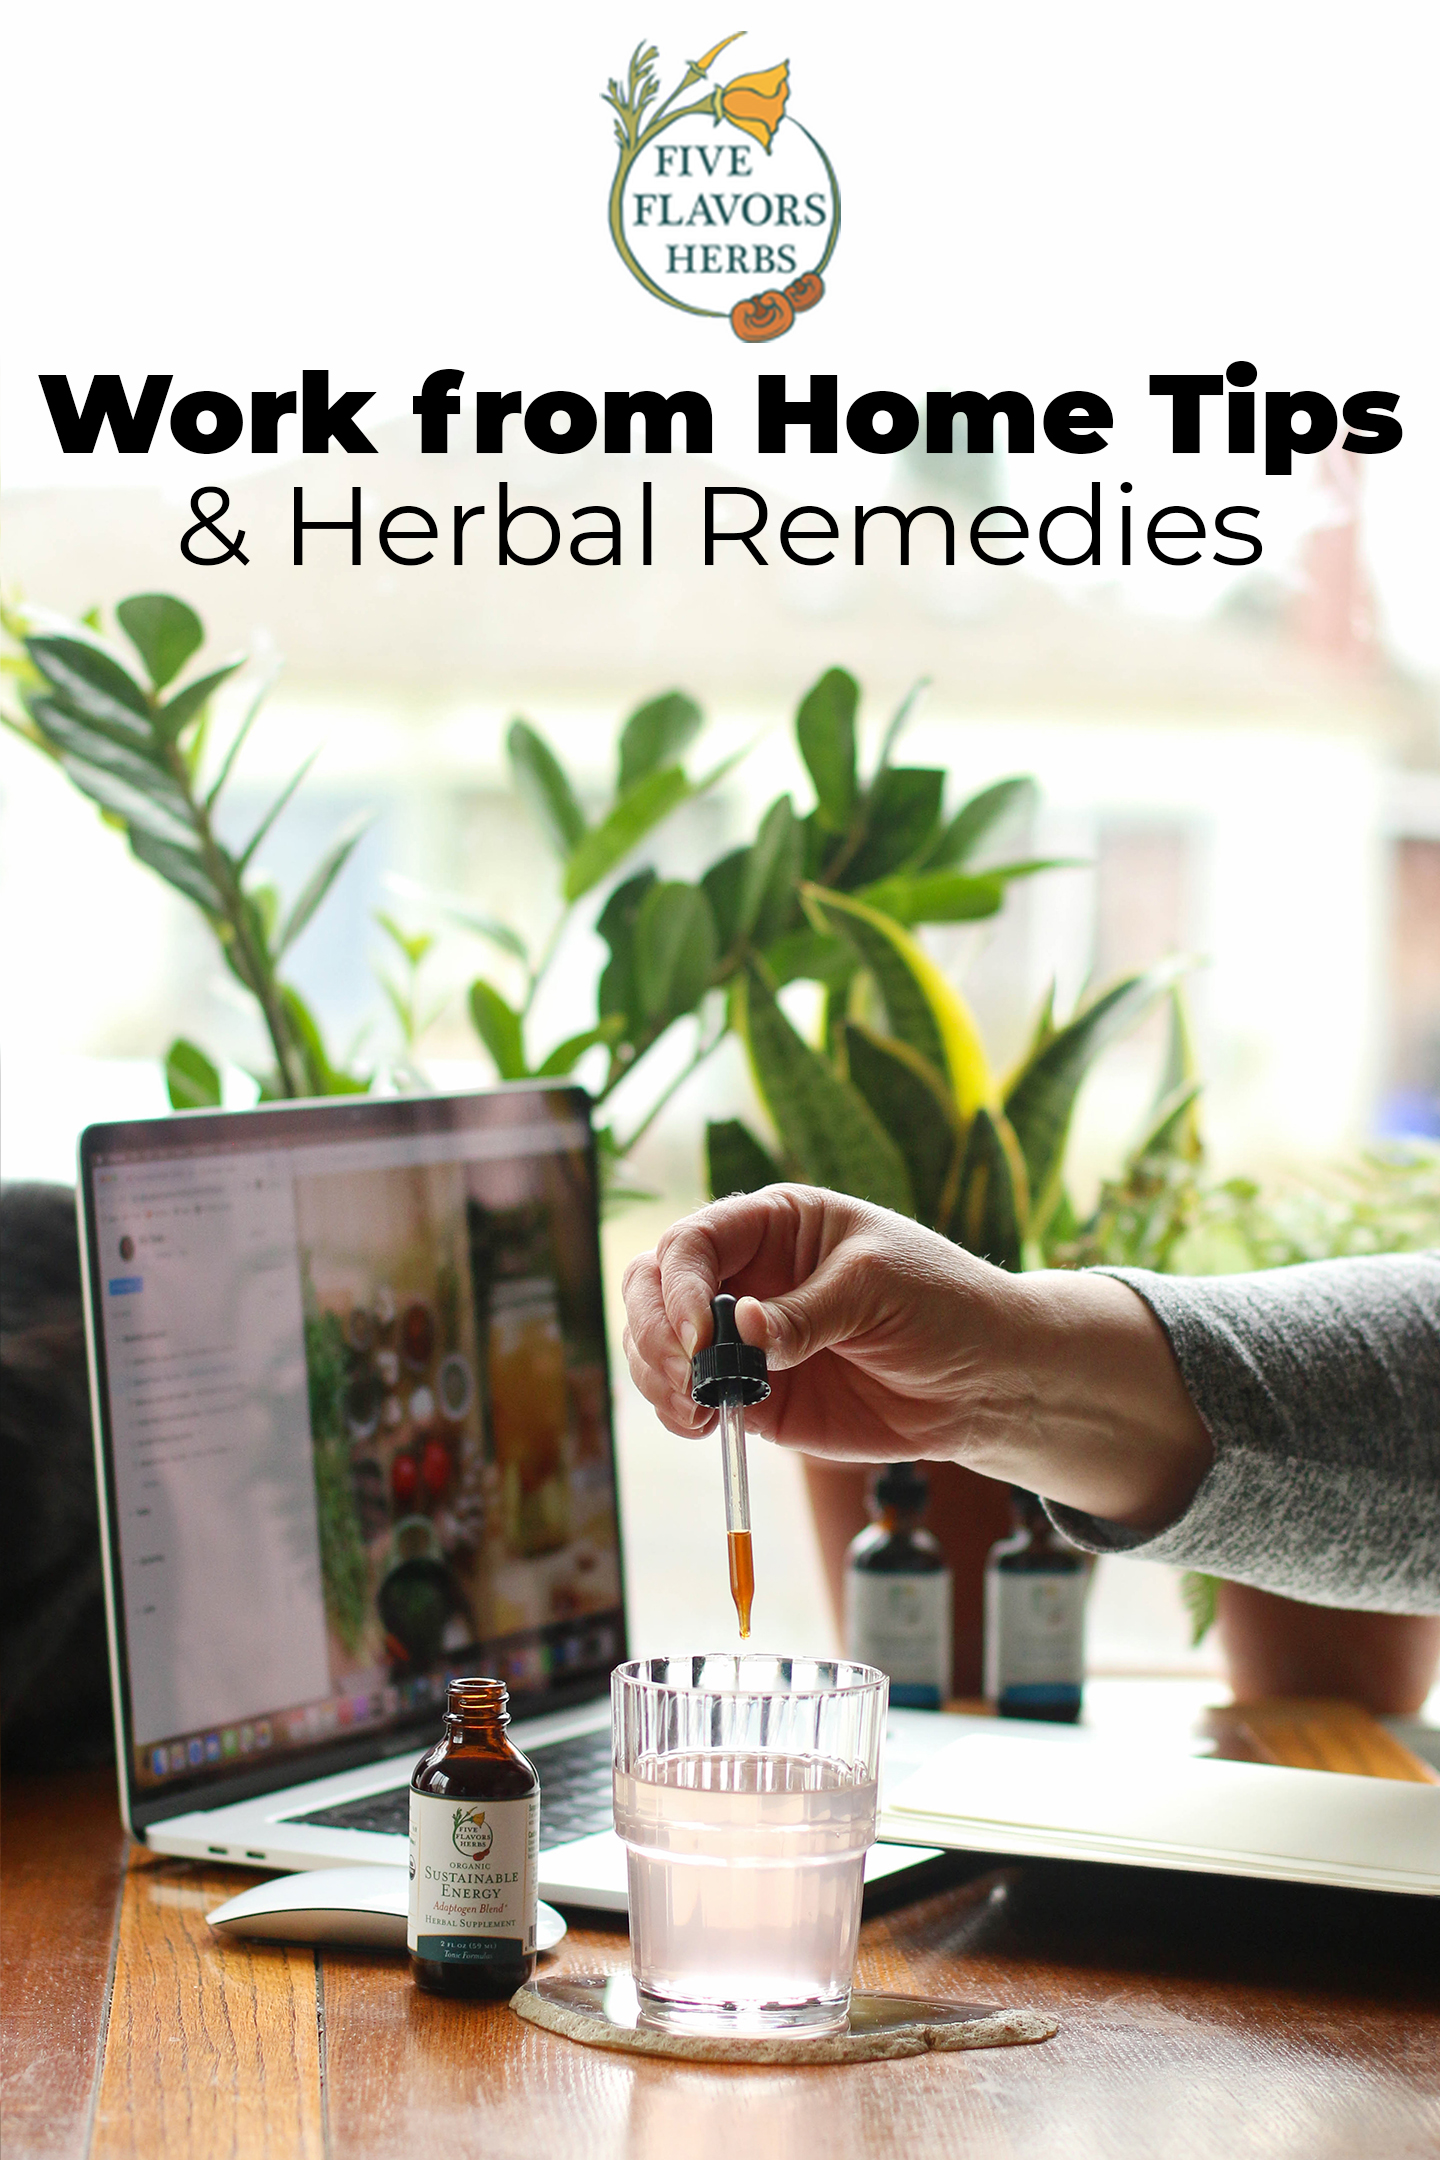 work-from-home-tips-home-office-setup-with-plants-and-sunlight-on-desk